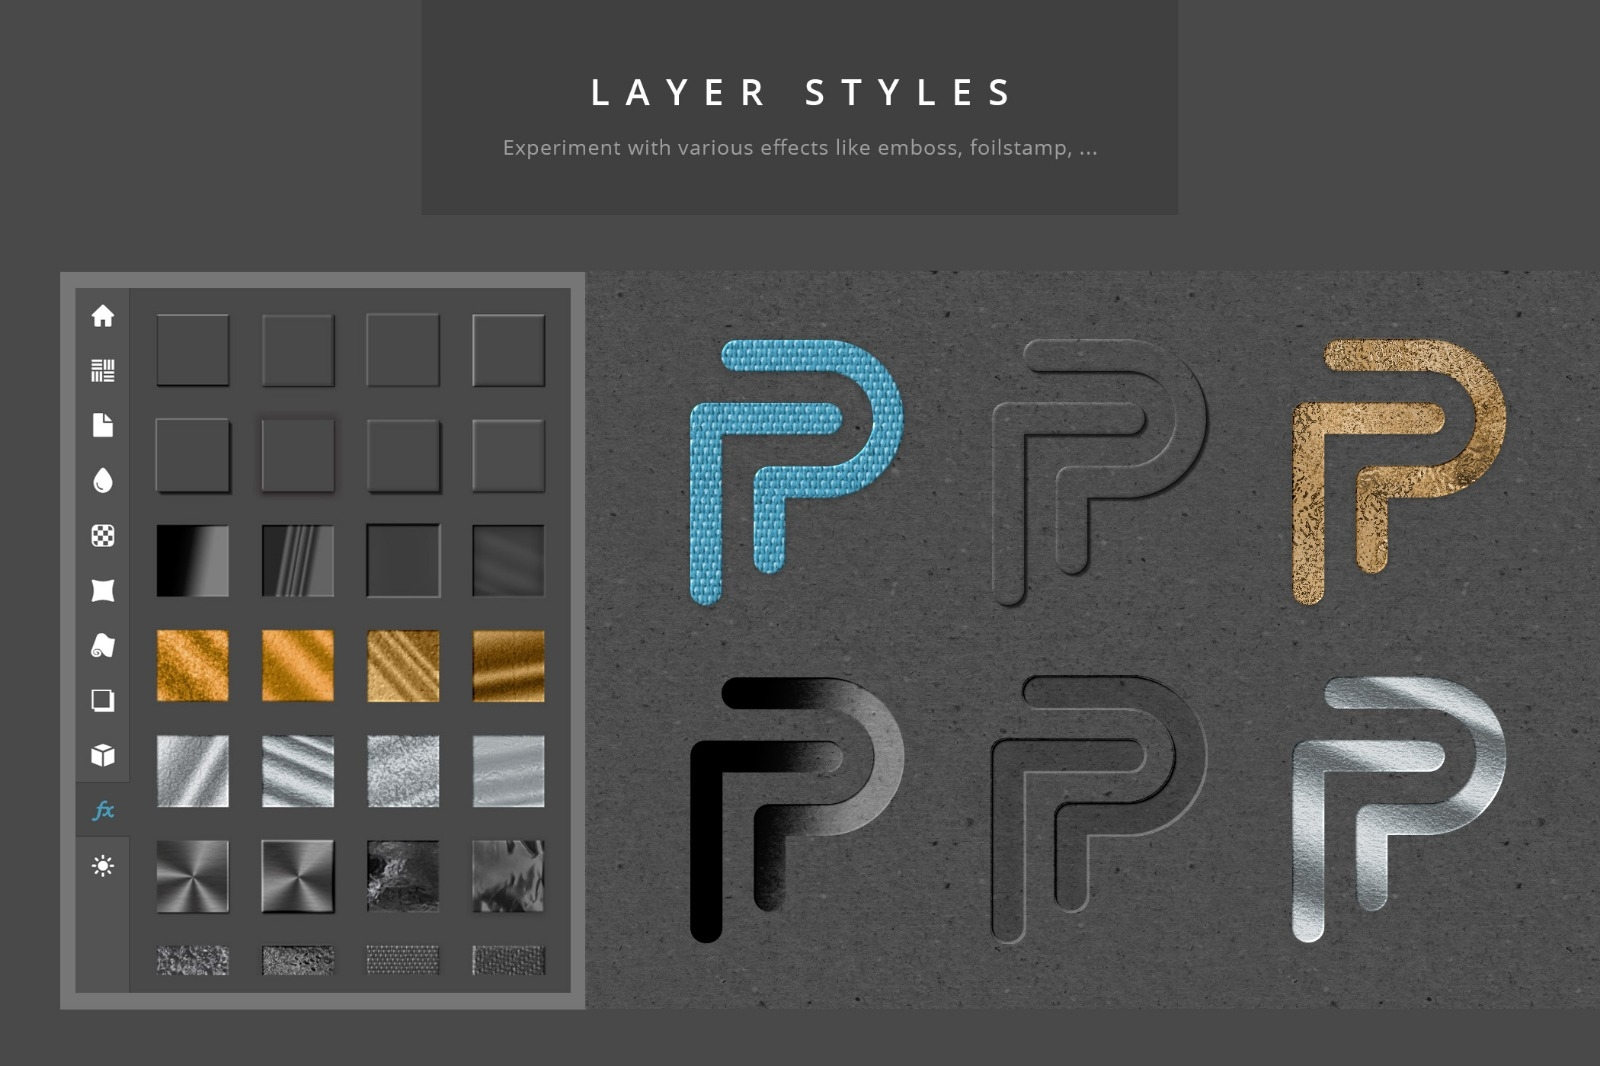 Paper Panel - Layerstyles